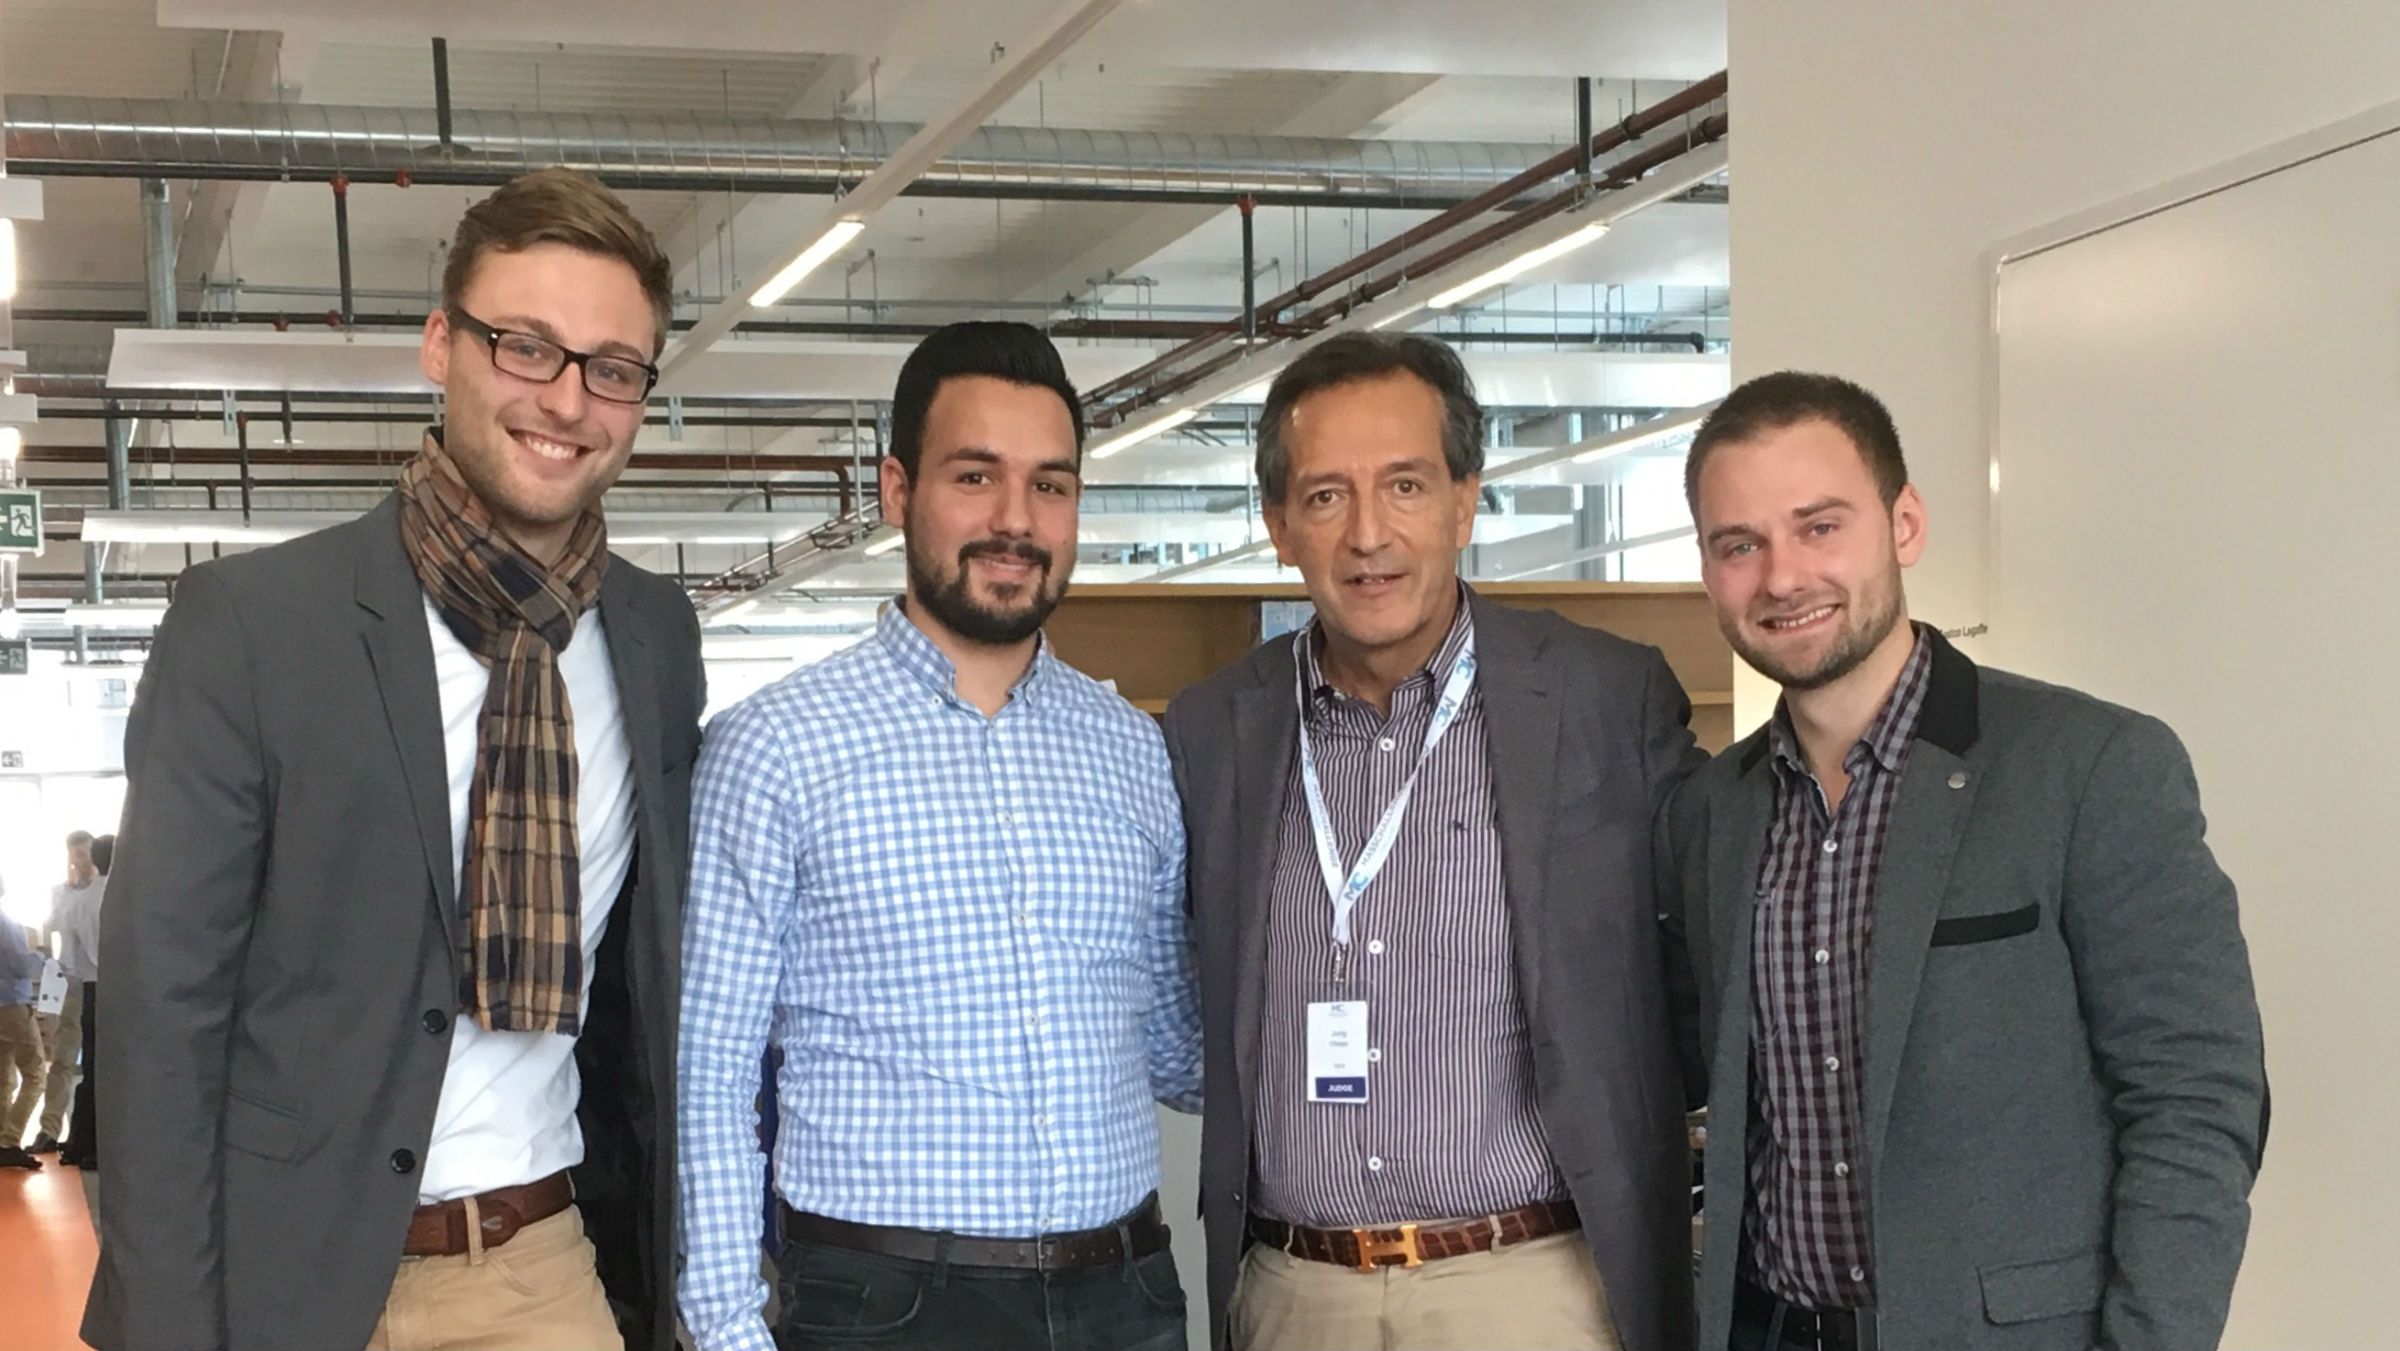 Support from the highest echelons: Jürg Oleas, GEA CEO (2nd from the right) paid a visit to the entrepreneurs in Lausanne from left to right: Jannik Desel, Bünyamin Akay, Jürg Oleas, Peter Peters (GEA)